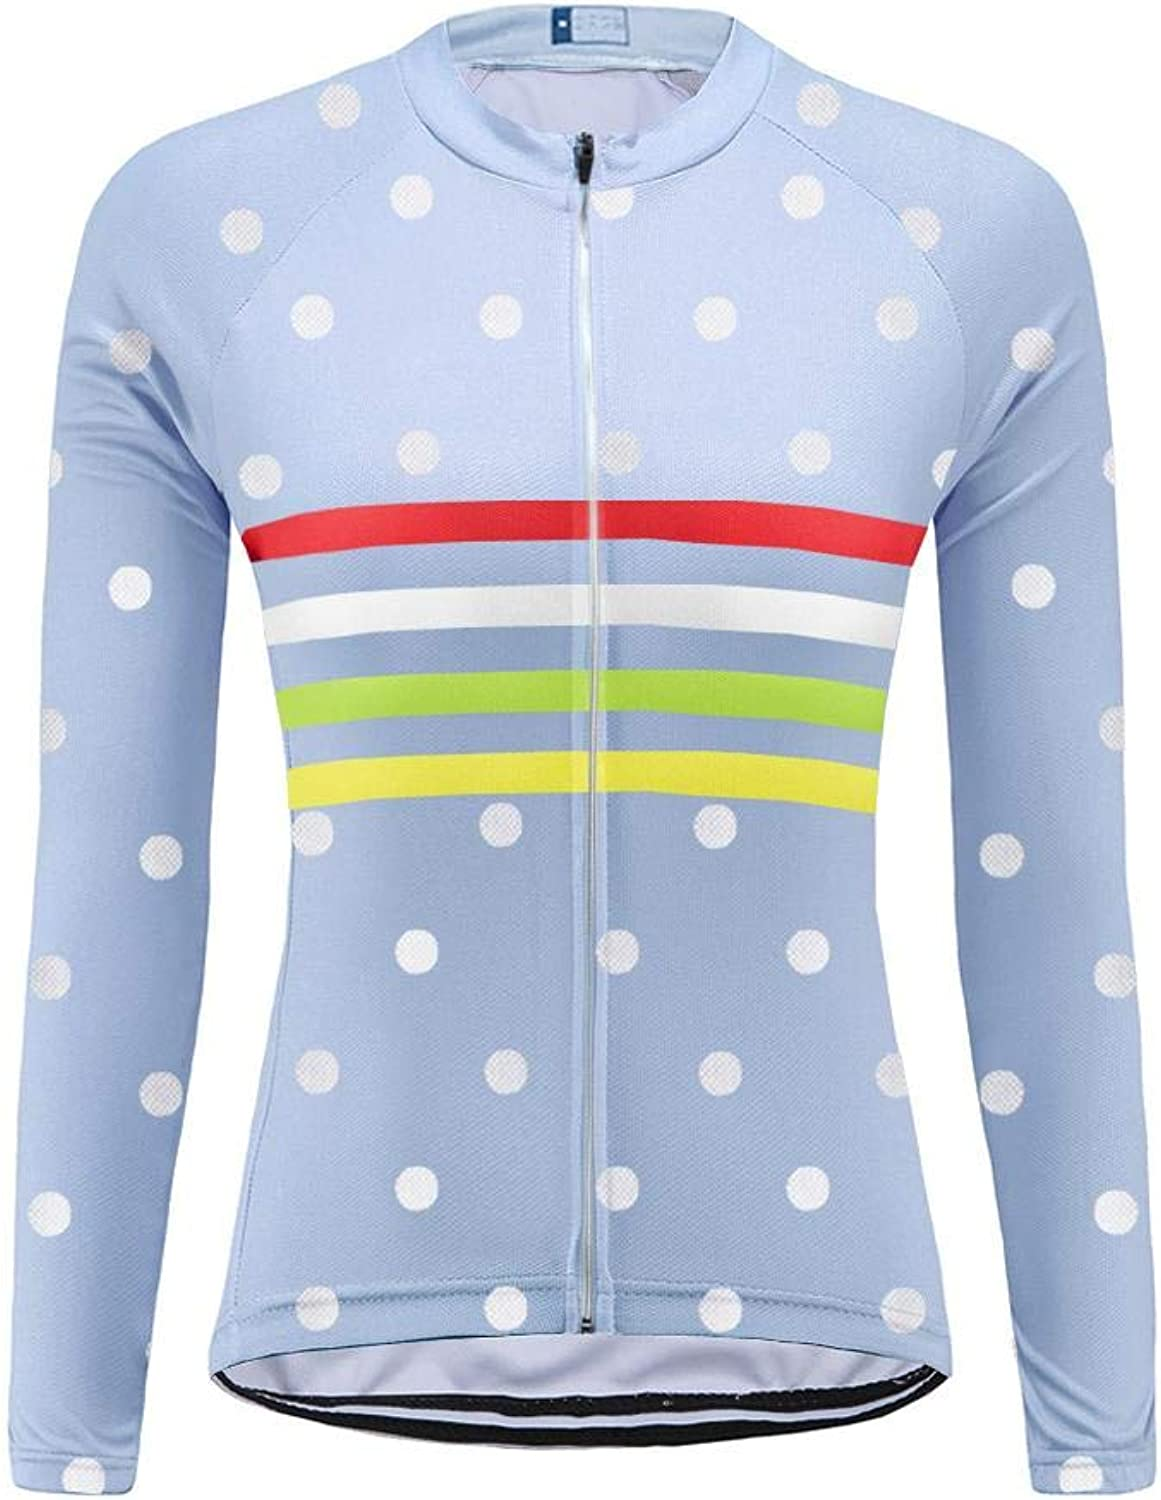 Uglyfrog Womens Cycling Top Autumn Winter Cycling Clothing Waterproof Jacket & Jersey Outdoor Sportwear